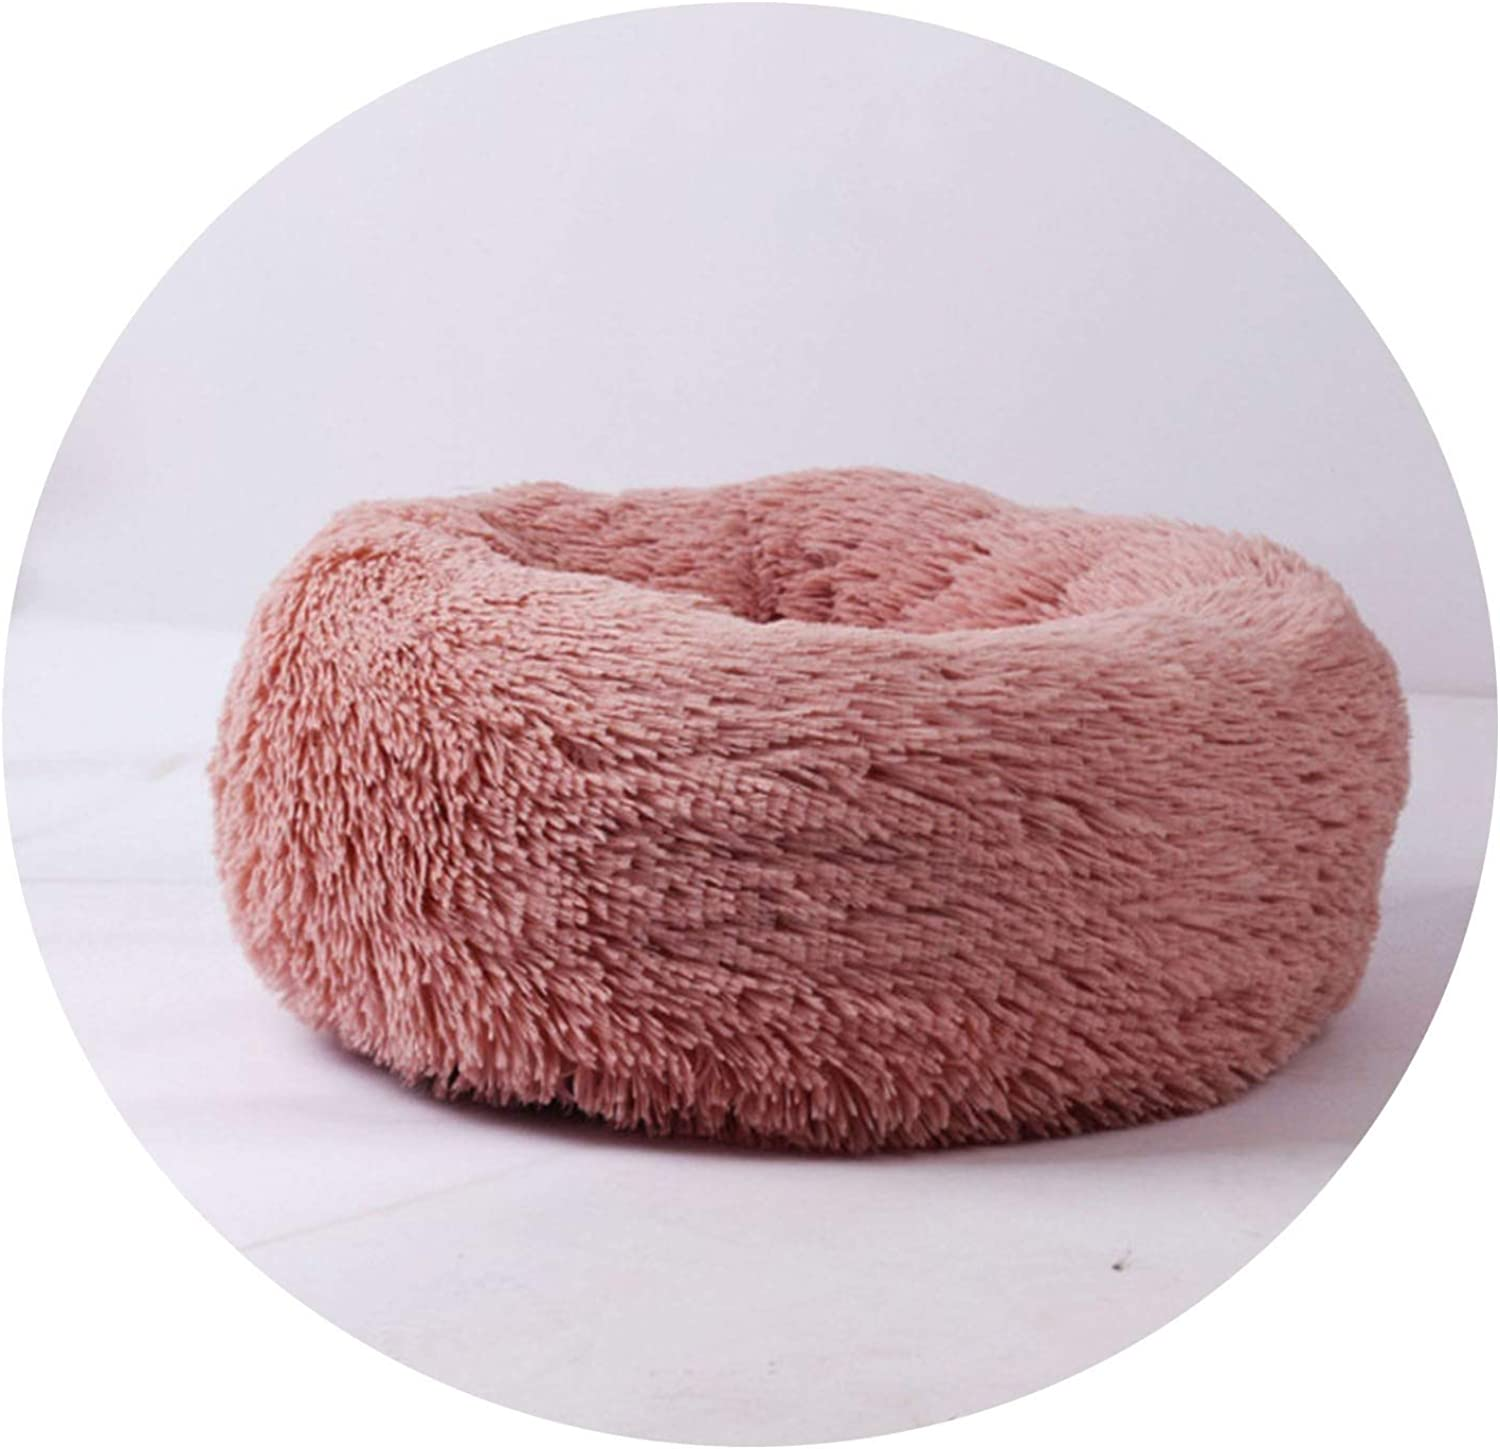 Sex Appealing Luxury Dog Bed Warm Deep Sleep Thick Donut Pet Beds for Cat Small Medium Dogs LongPile Plush Soft Round Dog House,Skin Pink,L 65cm 14kg pet